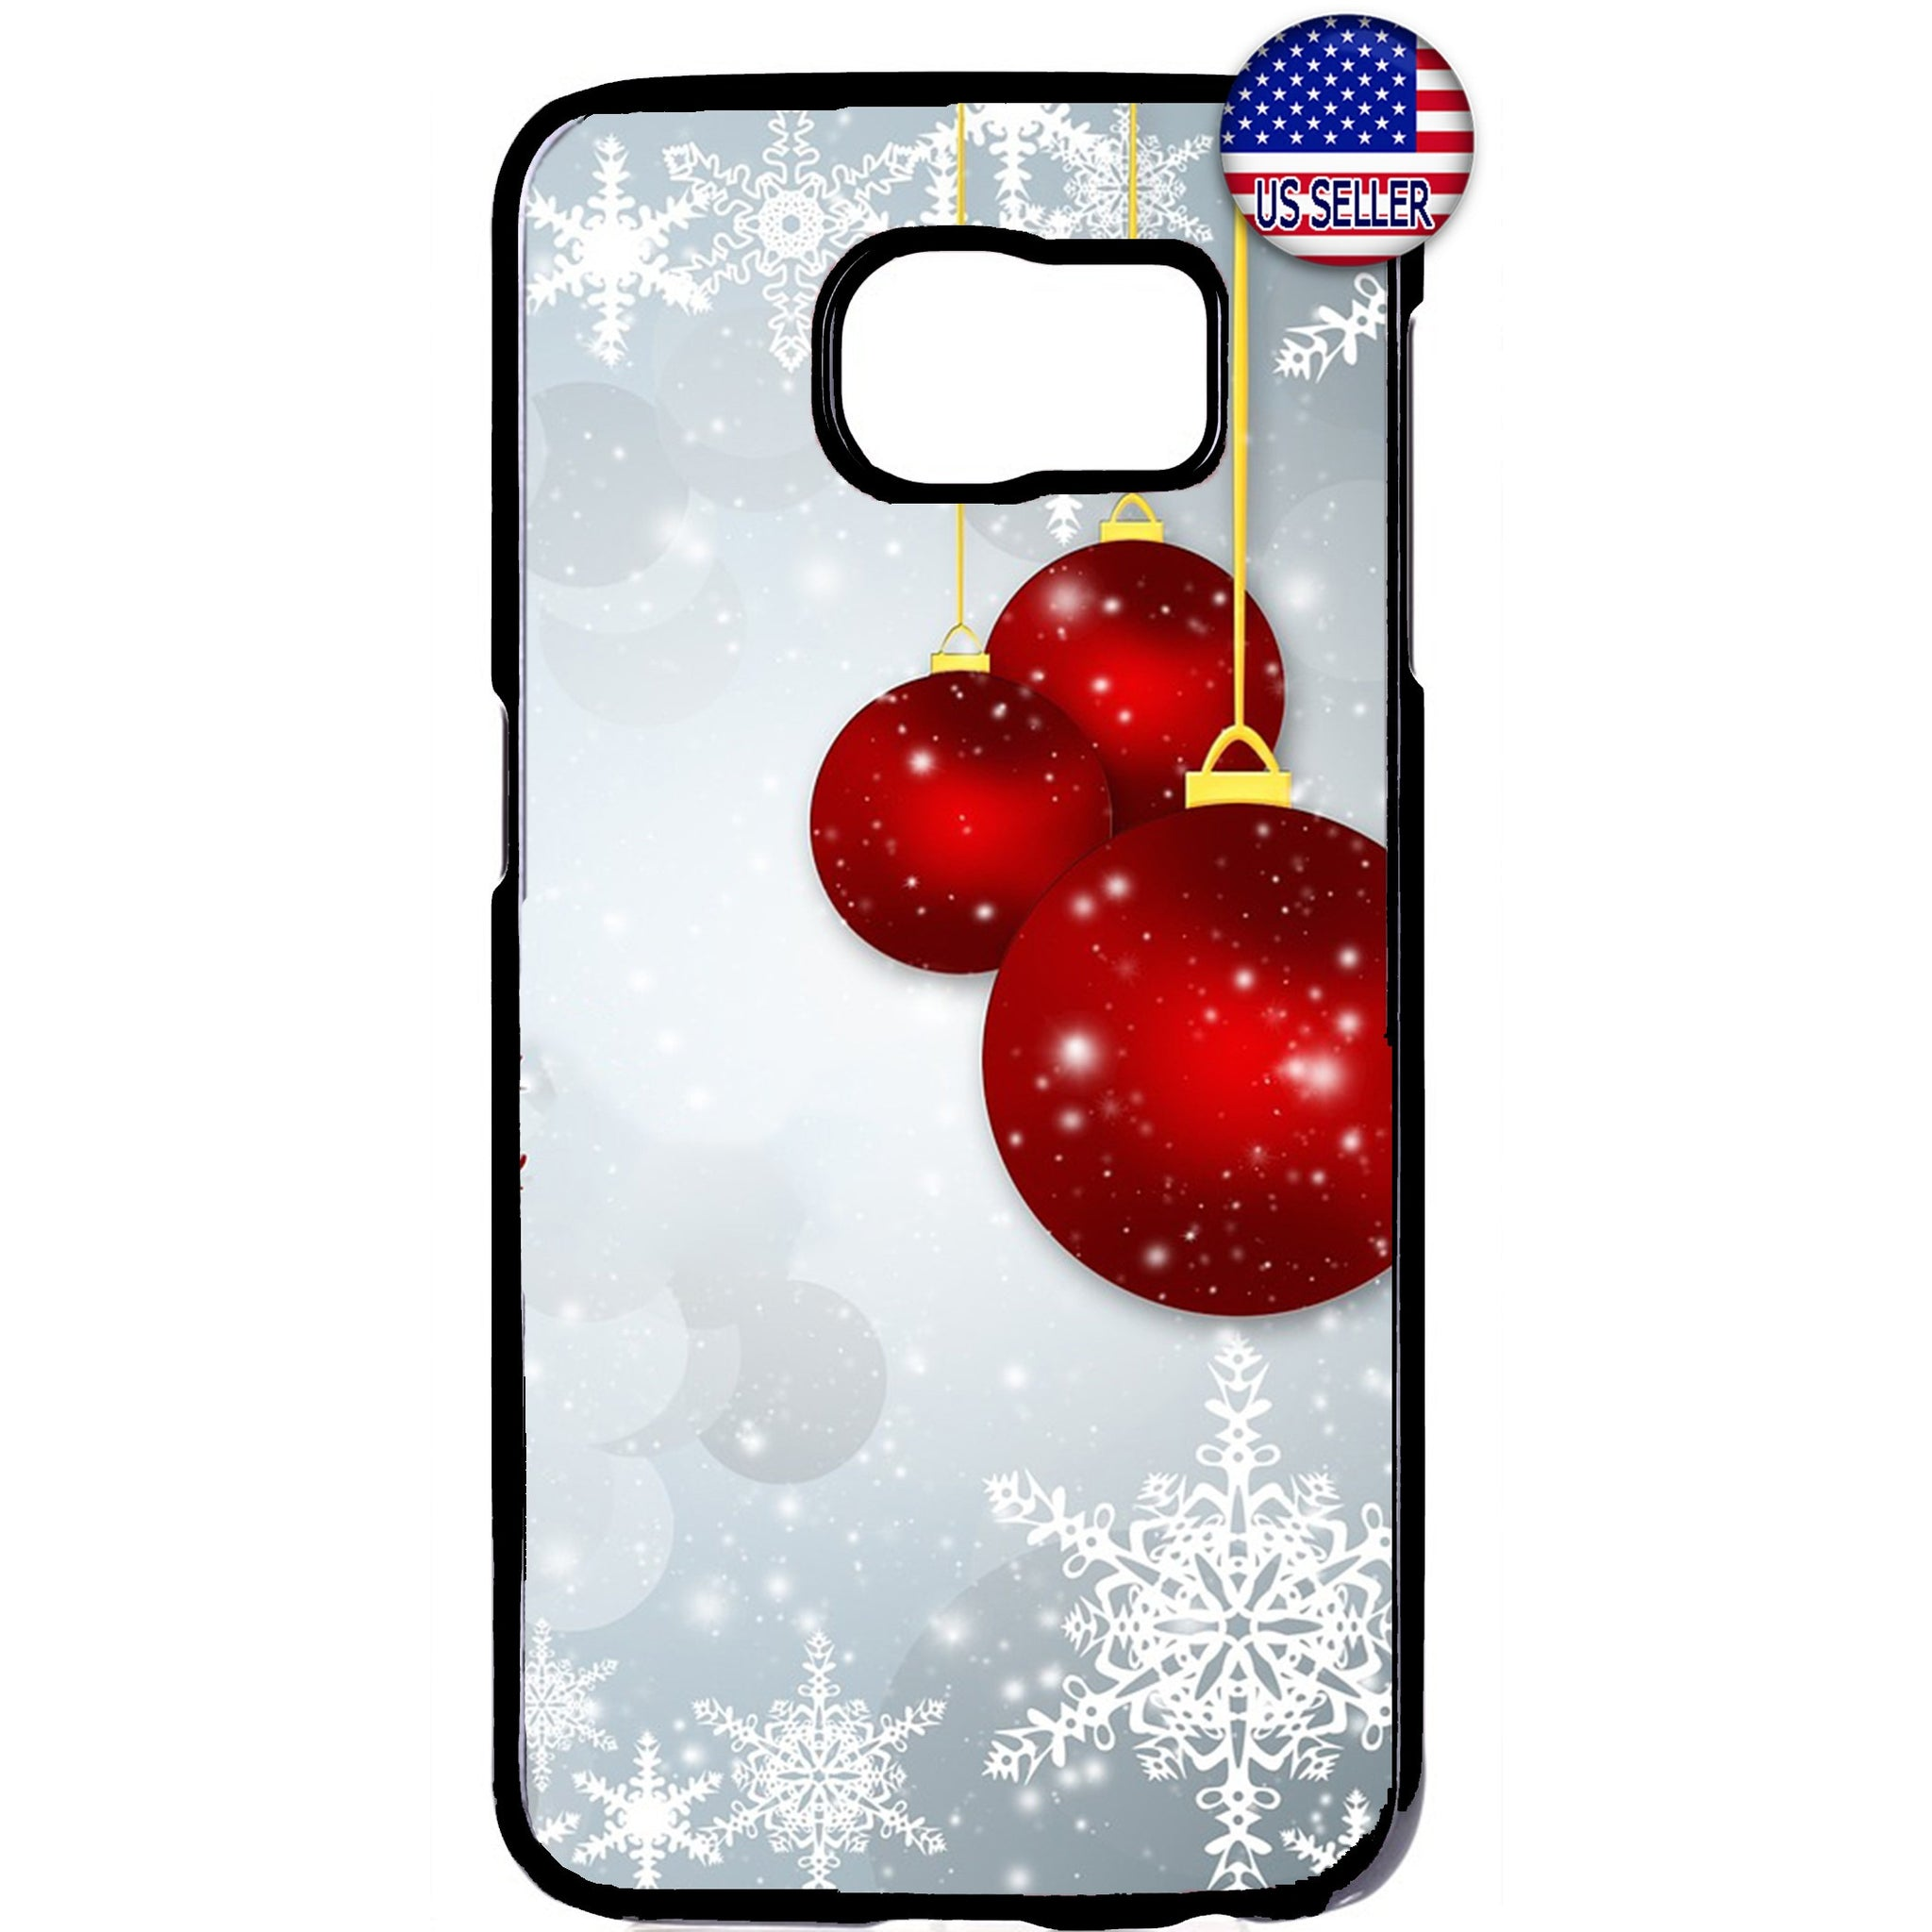 Red Merry Merry Christmas Ornaments Rubber Case Cover For Samsung Galaxy Note